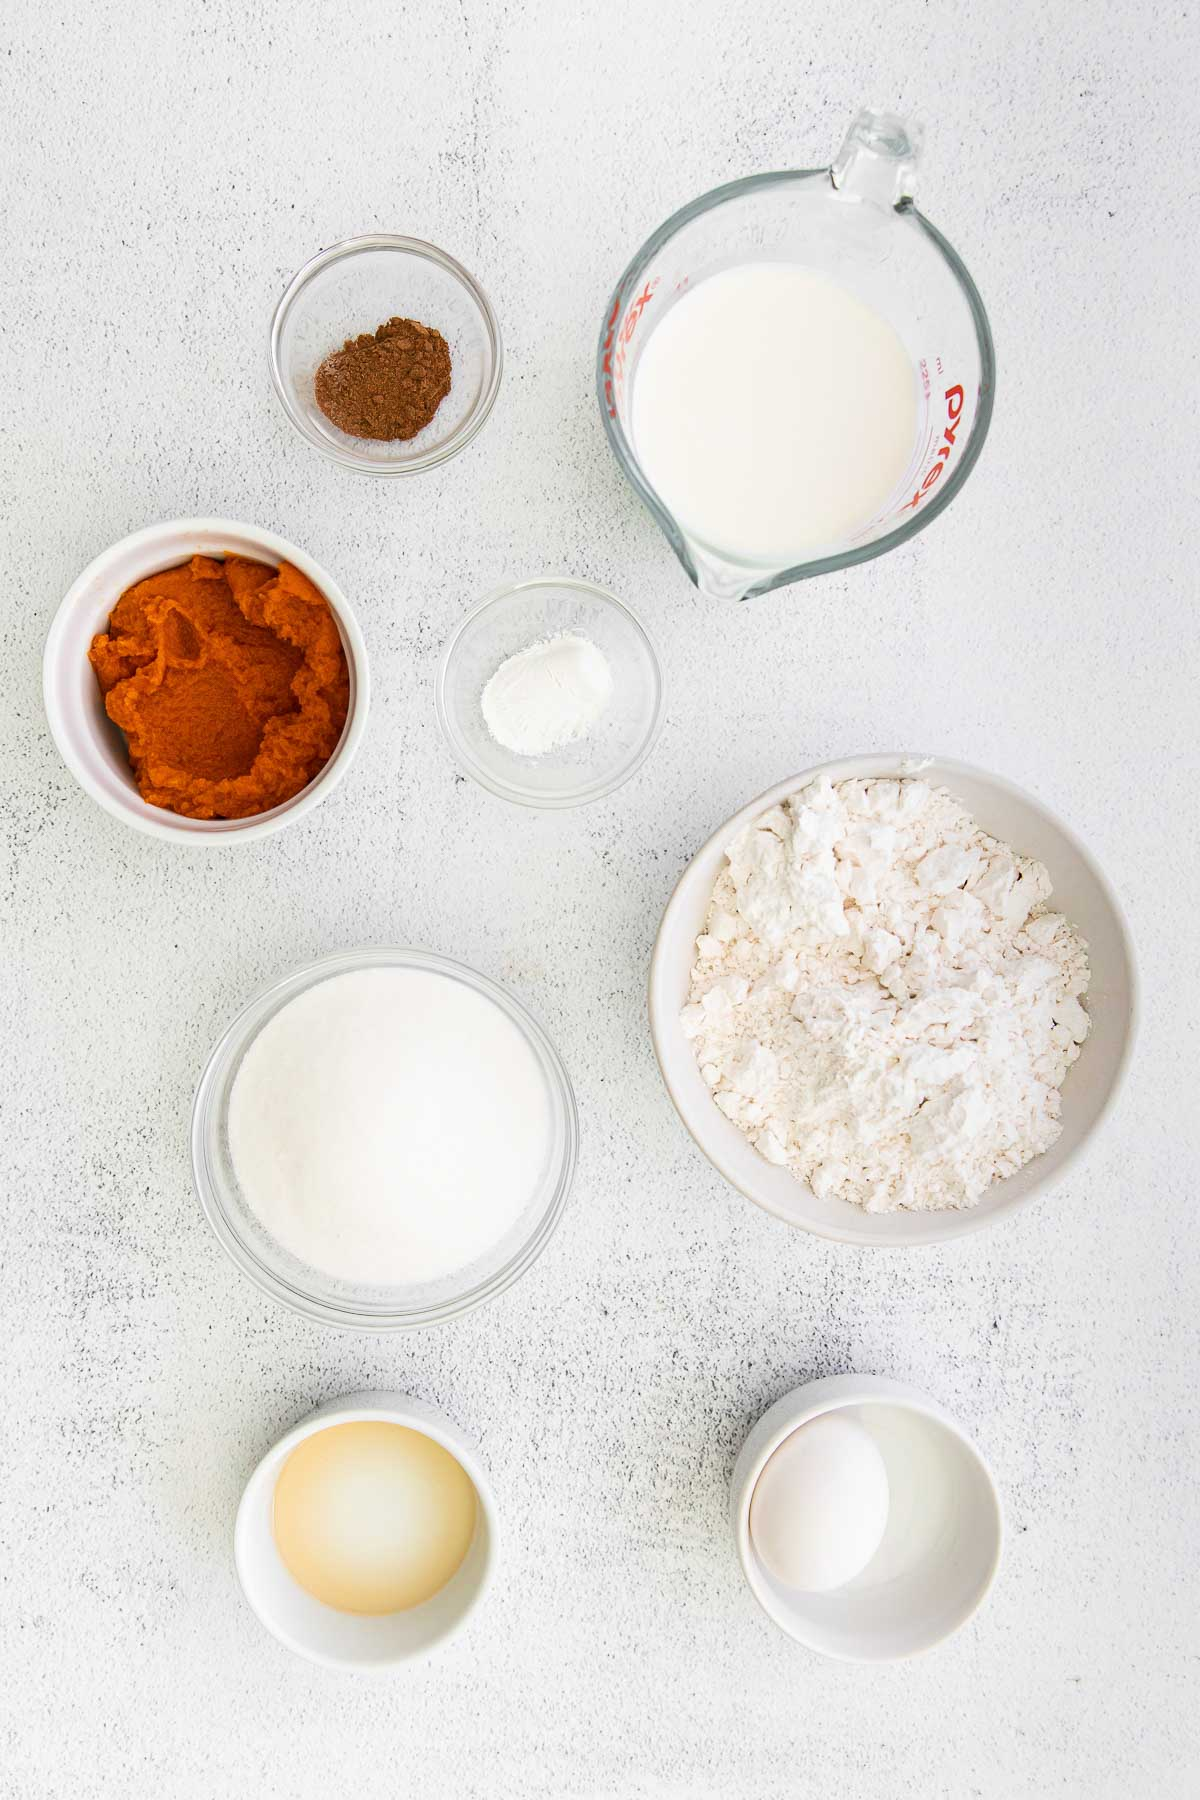 several small white bowls with ingredients for pumpkin donuts - flour, pumpkin puree, sugar, vanilla, milk and spices